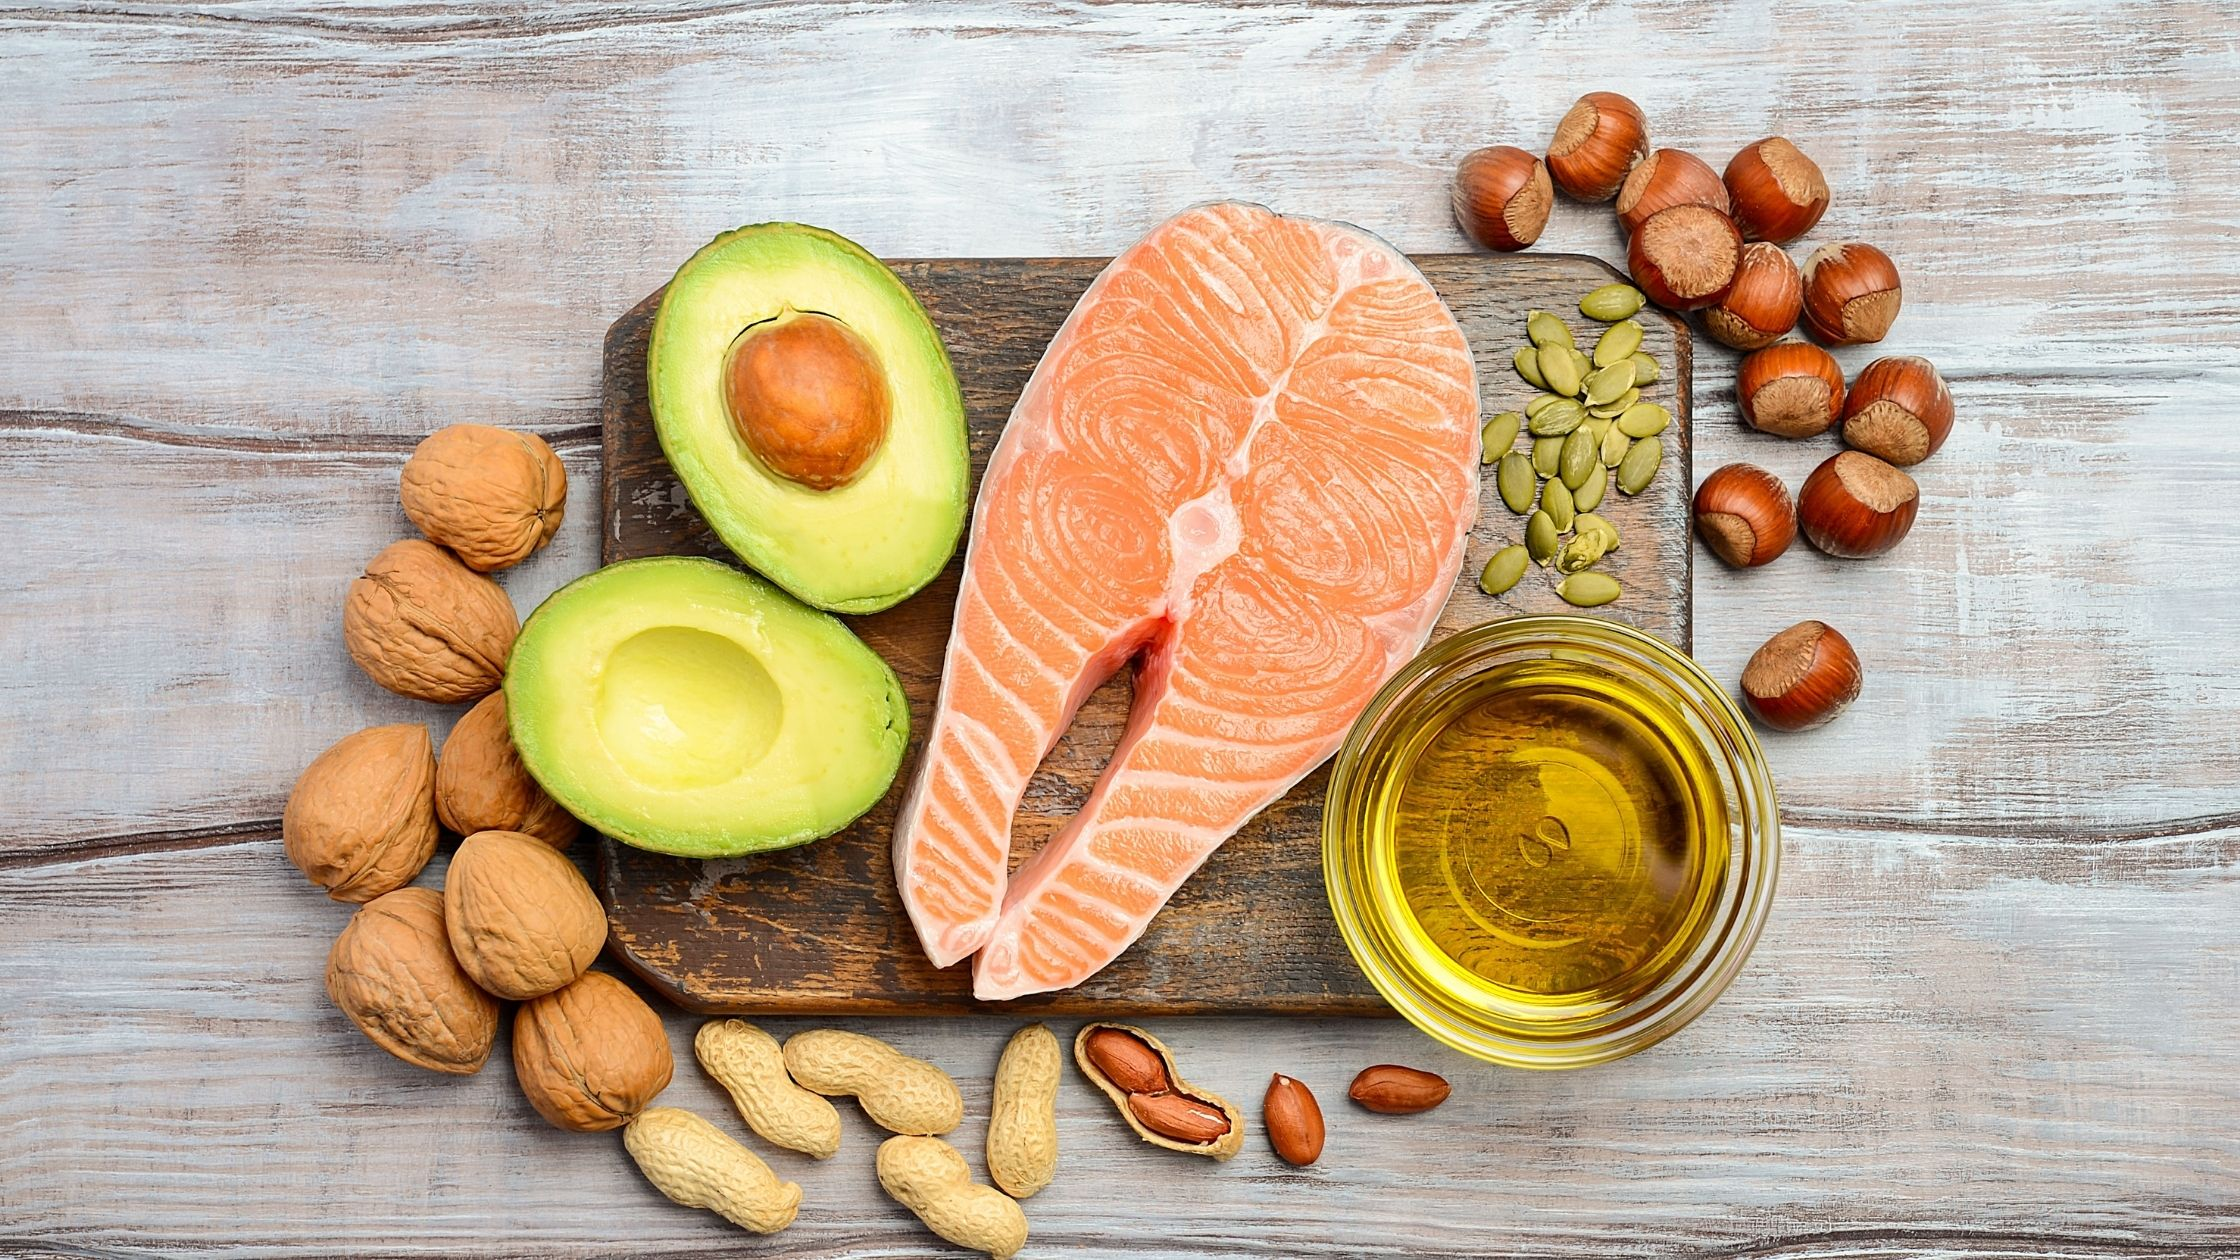 How to increase your fat intake